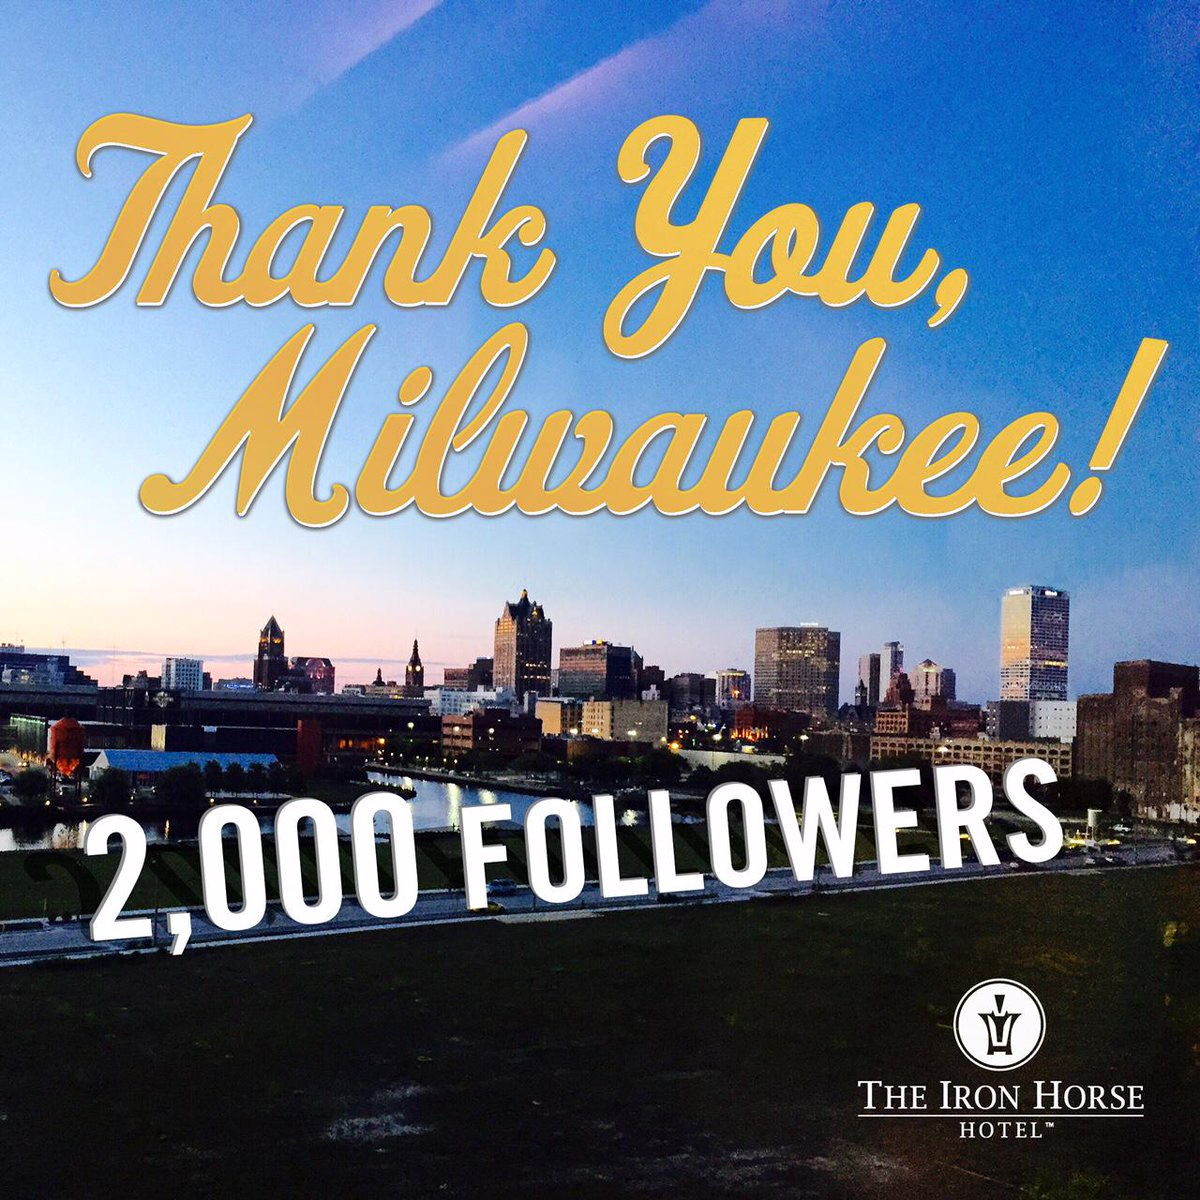 We passed 2K on Instagram! To celebrate we're giving away a FREE night stay The Iron Horse! Retweet to enter contest! http://t.co/h3JhMkq9mU